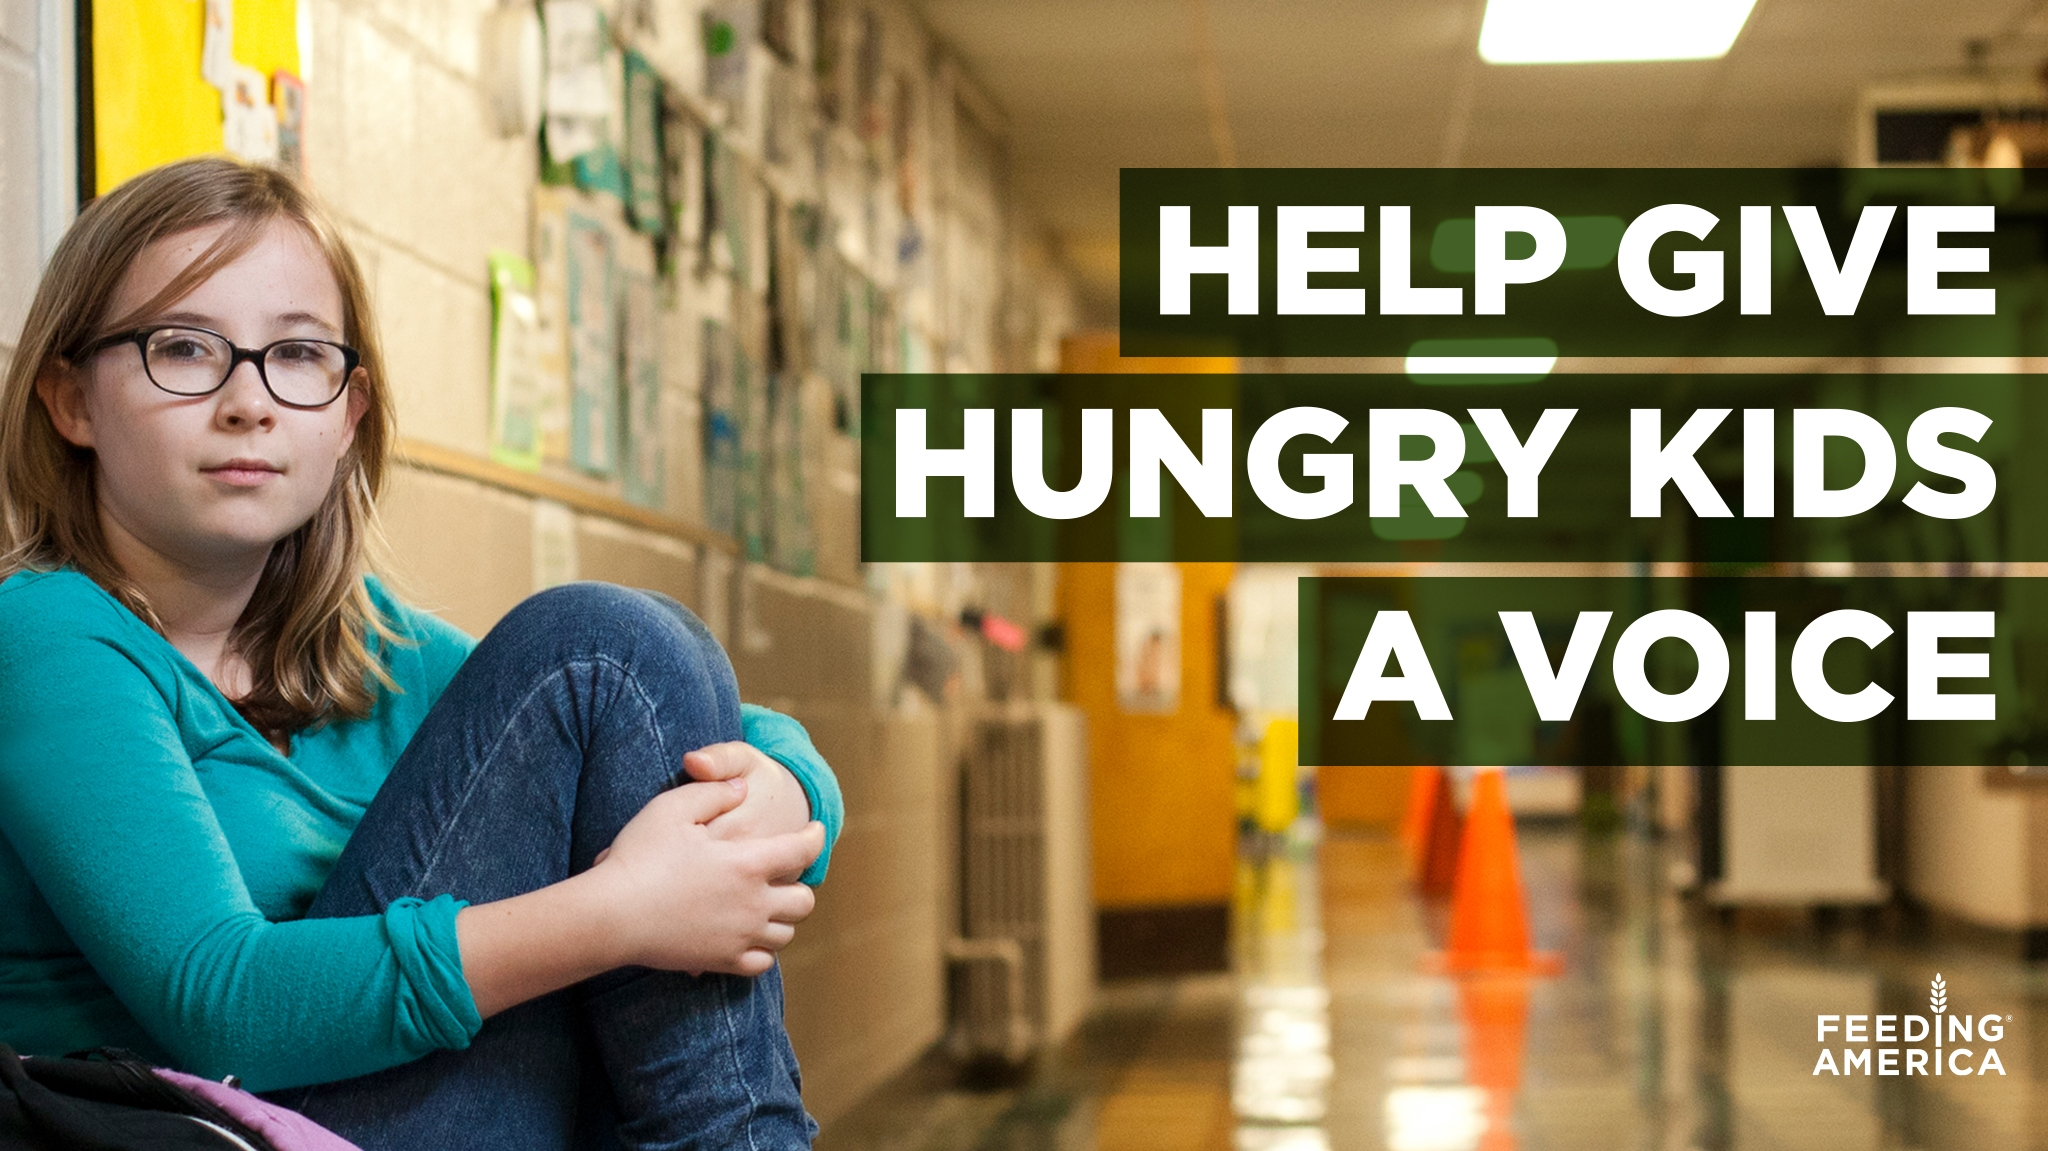 Fewer US children face hunger due to tax credit: data